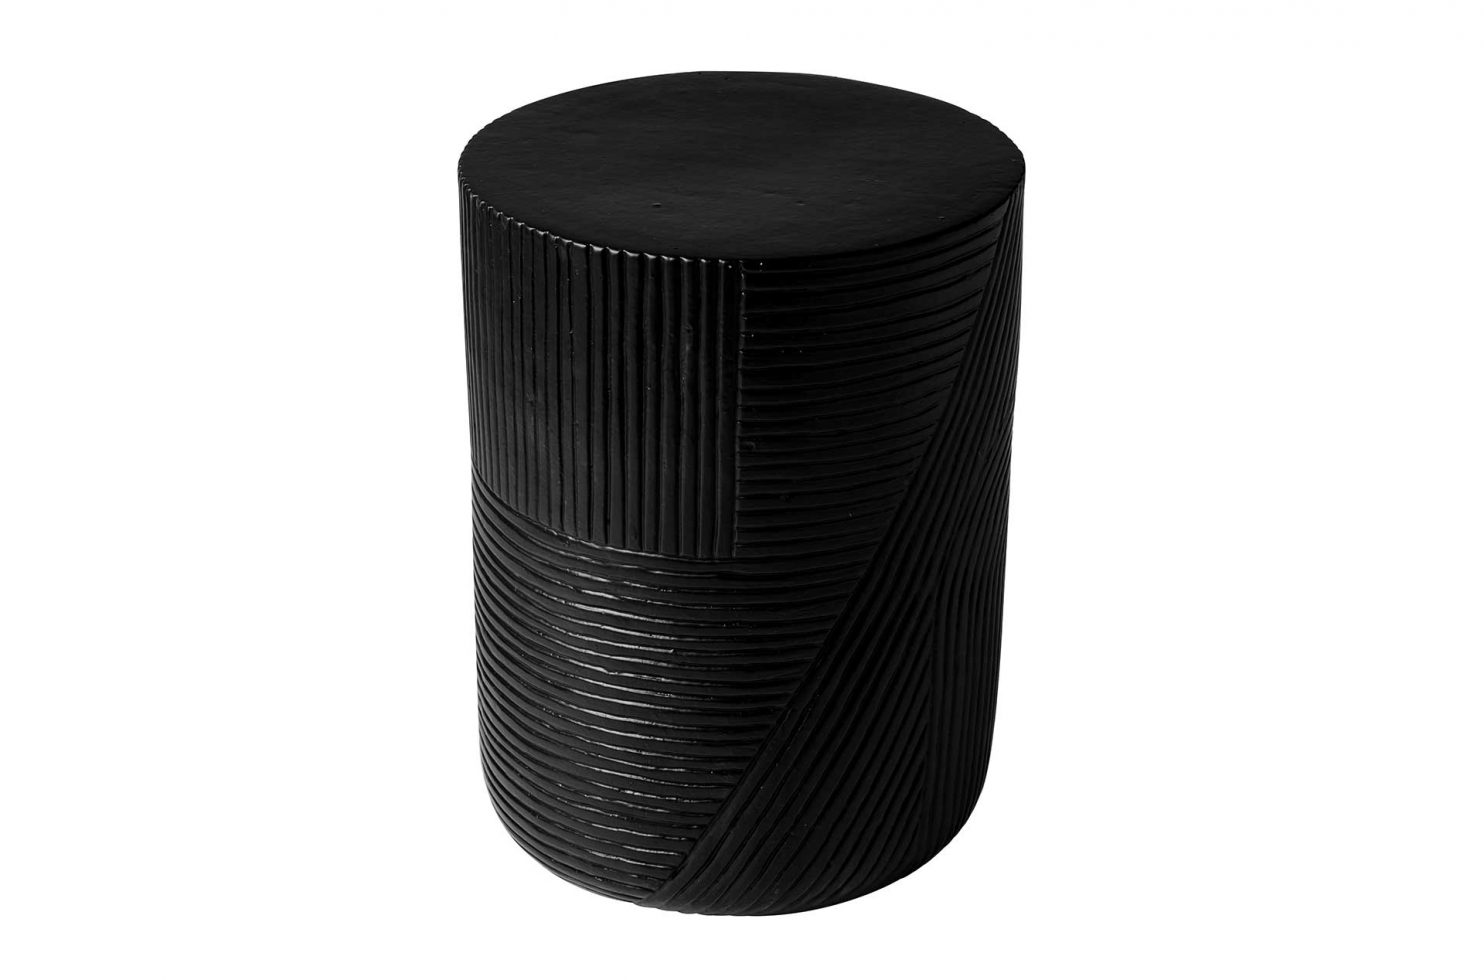 prov cer serenity textured side table 16in C30802032 coal 1 main2 web